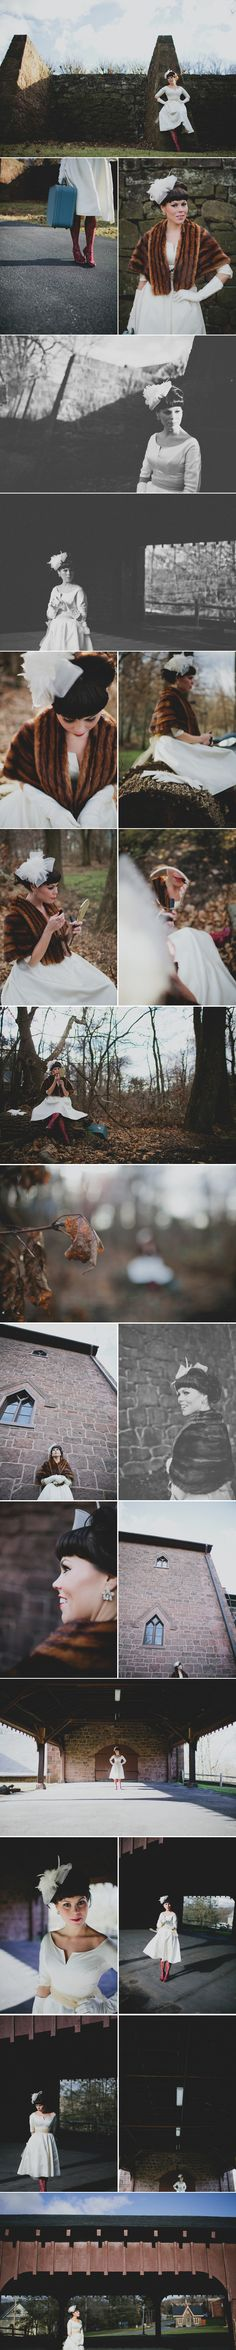 Win wedding photography from this photographer at the Borrowed Event!